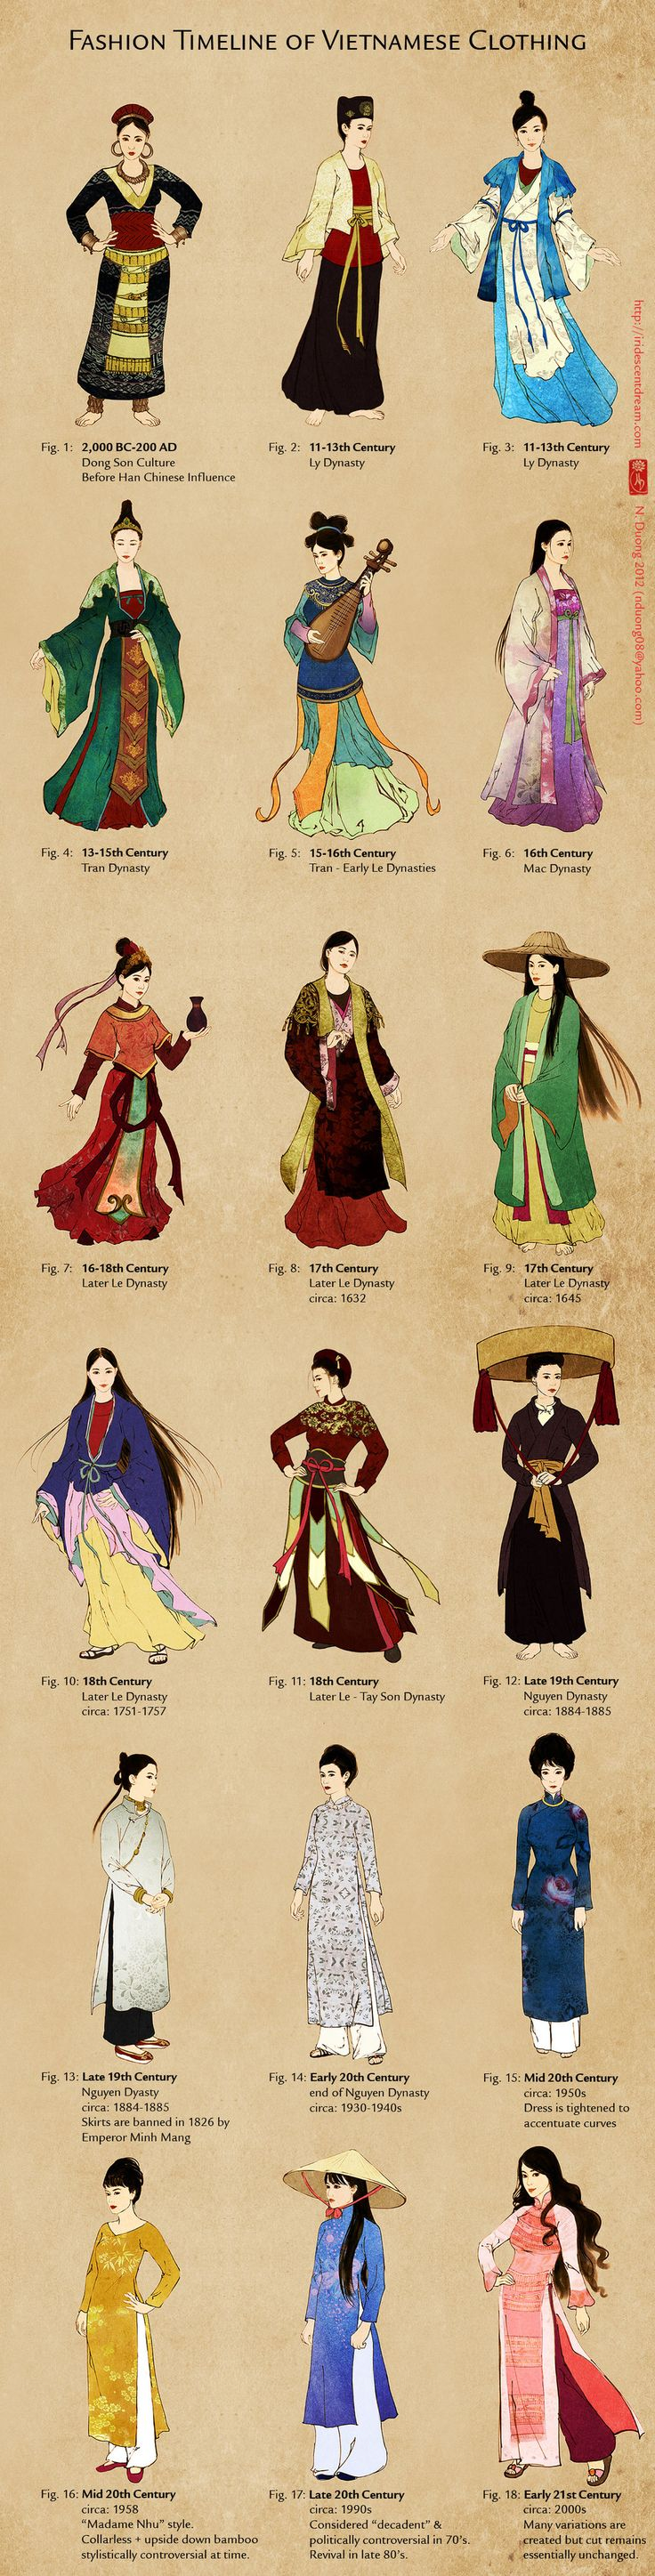 Evolution of Vietnamese Clothing. I love historical clothing and seeing how it evolves. I've longed to see the evolution of Vietnamese clothing but always came up empty handed due to lack of information... until now.  created this timeline because as a visual person, I like to know how clothing changed by seeing it side by side.